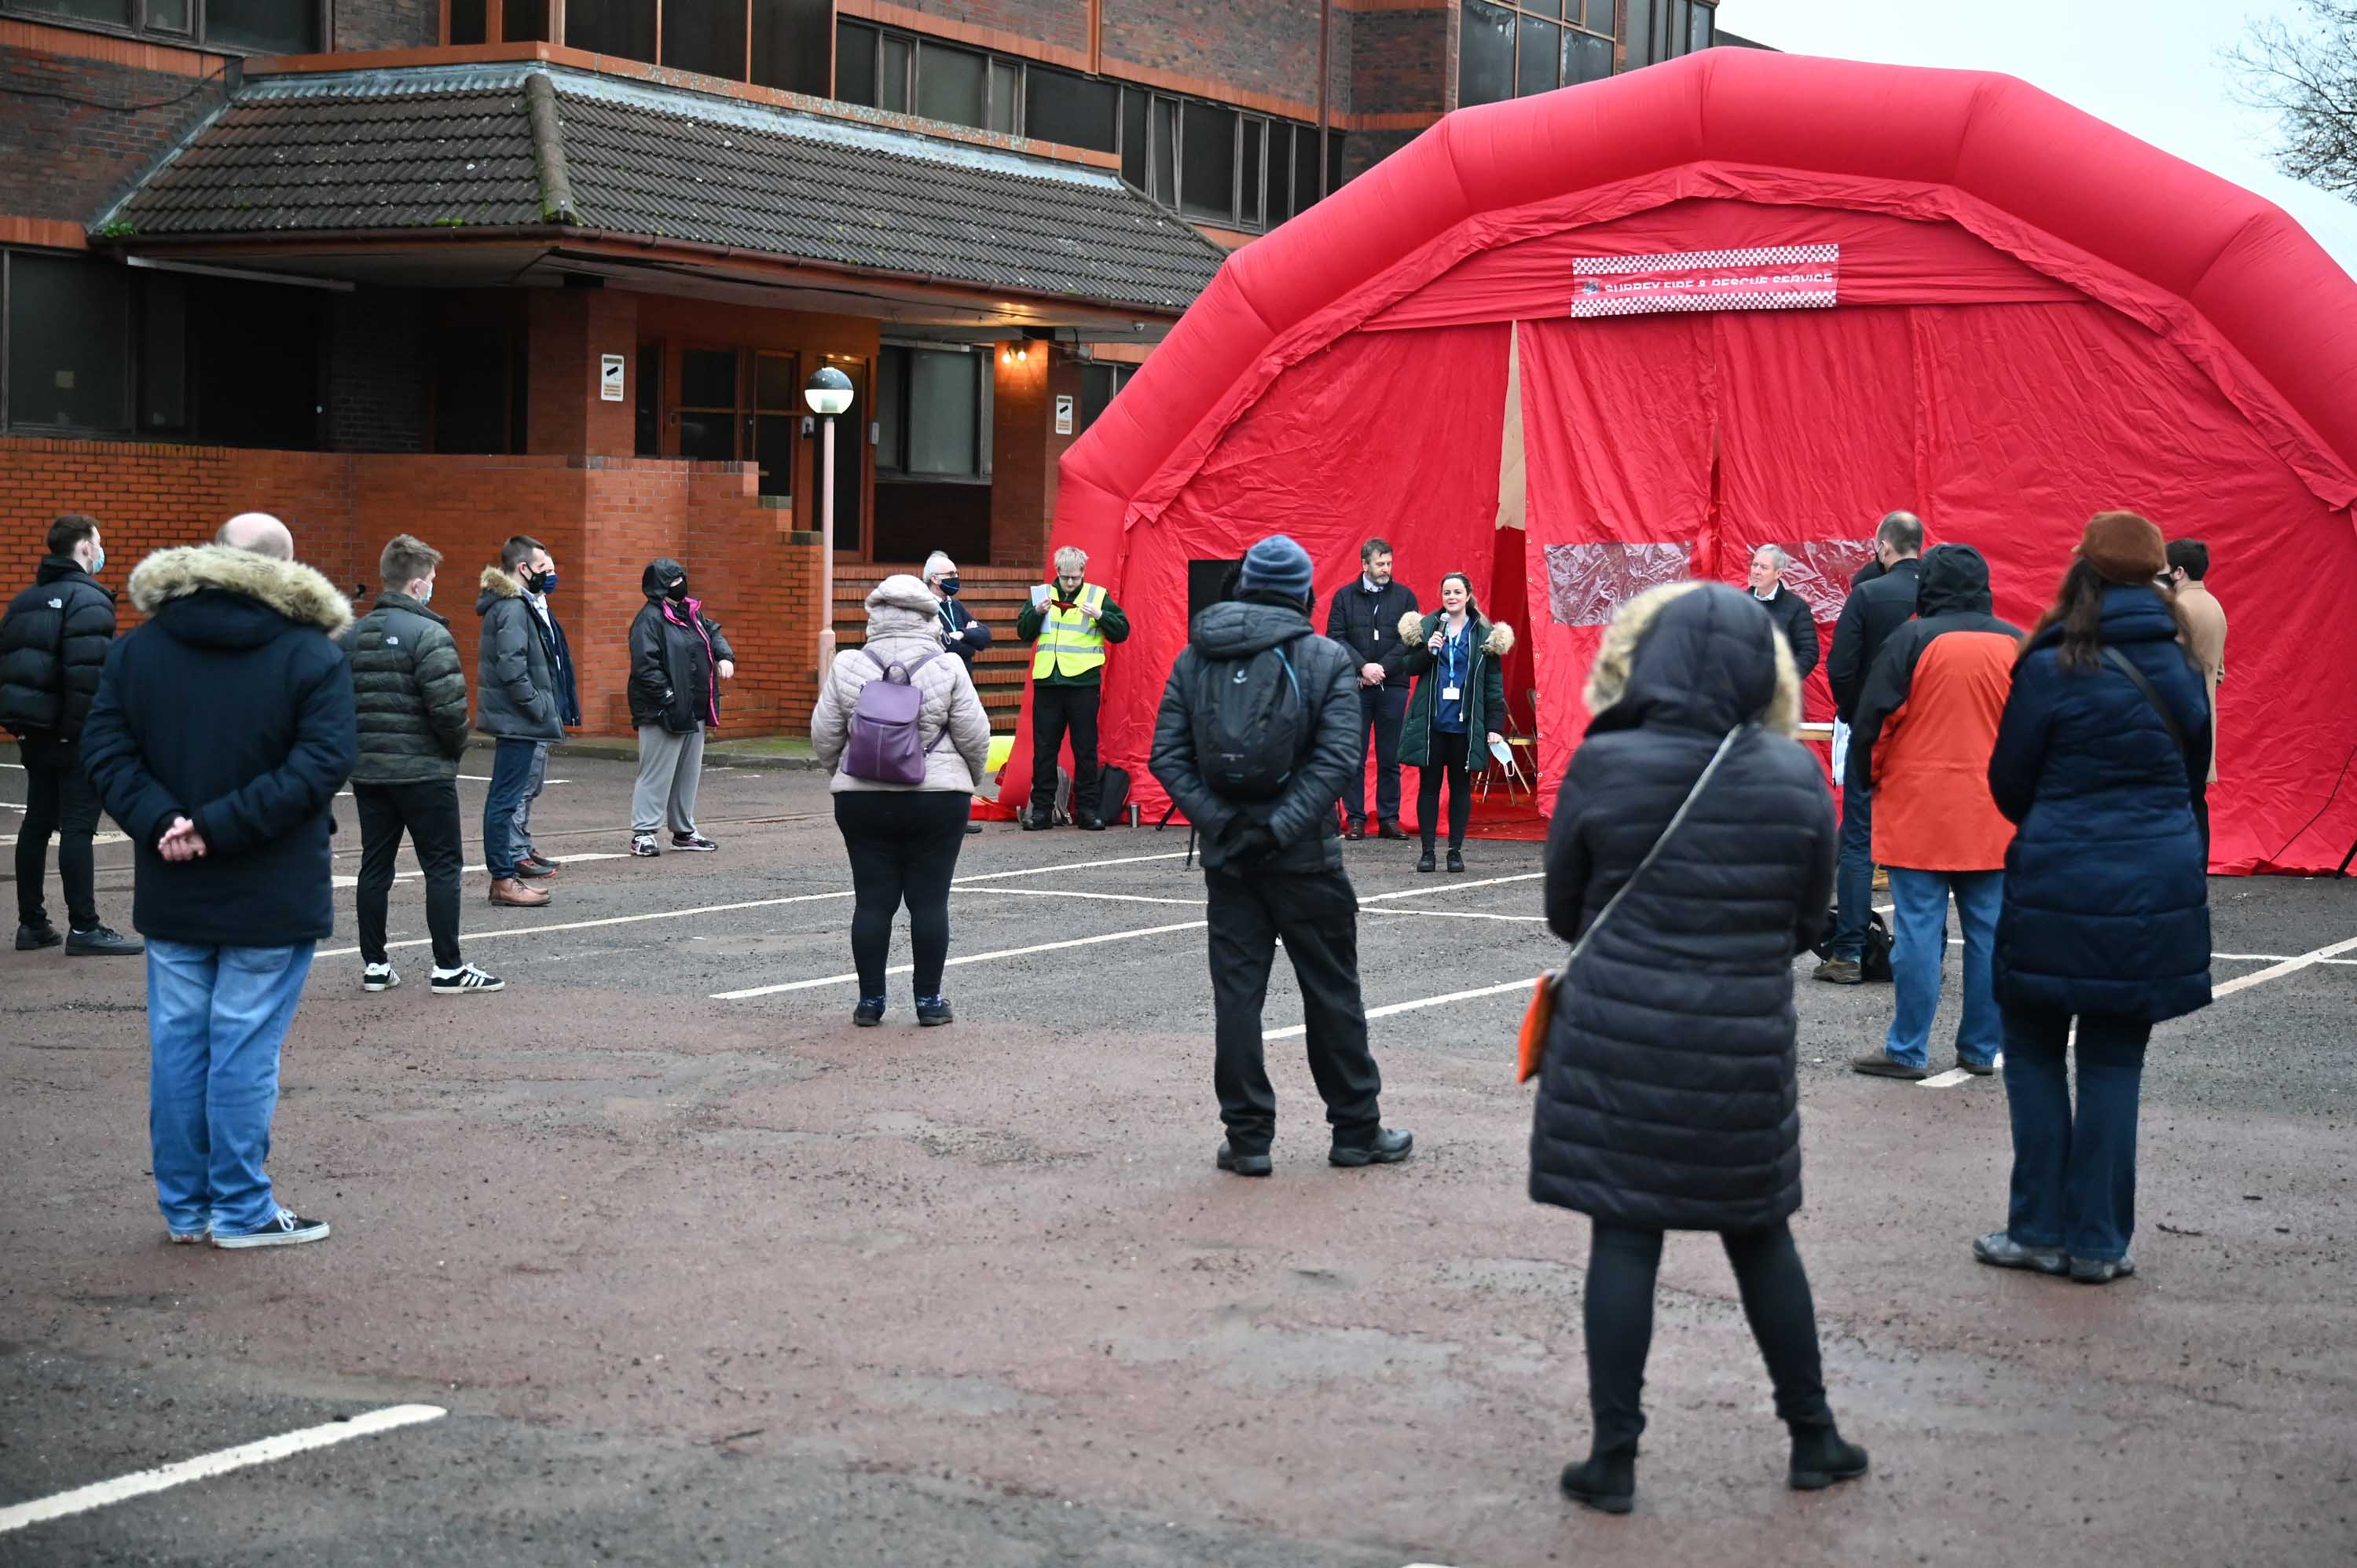 Volunteers are briefed at a fire station as local authorities prepare to deploy Covid-19 testing kits on February 2, in Woking, England.